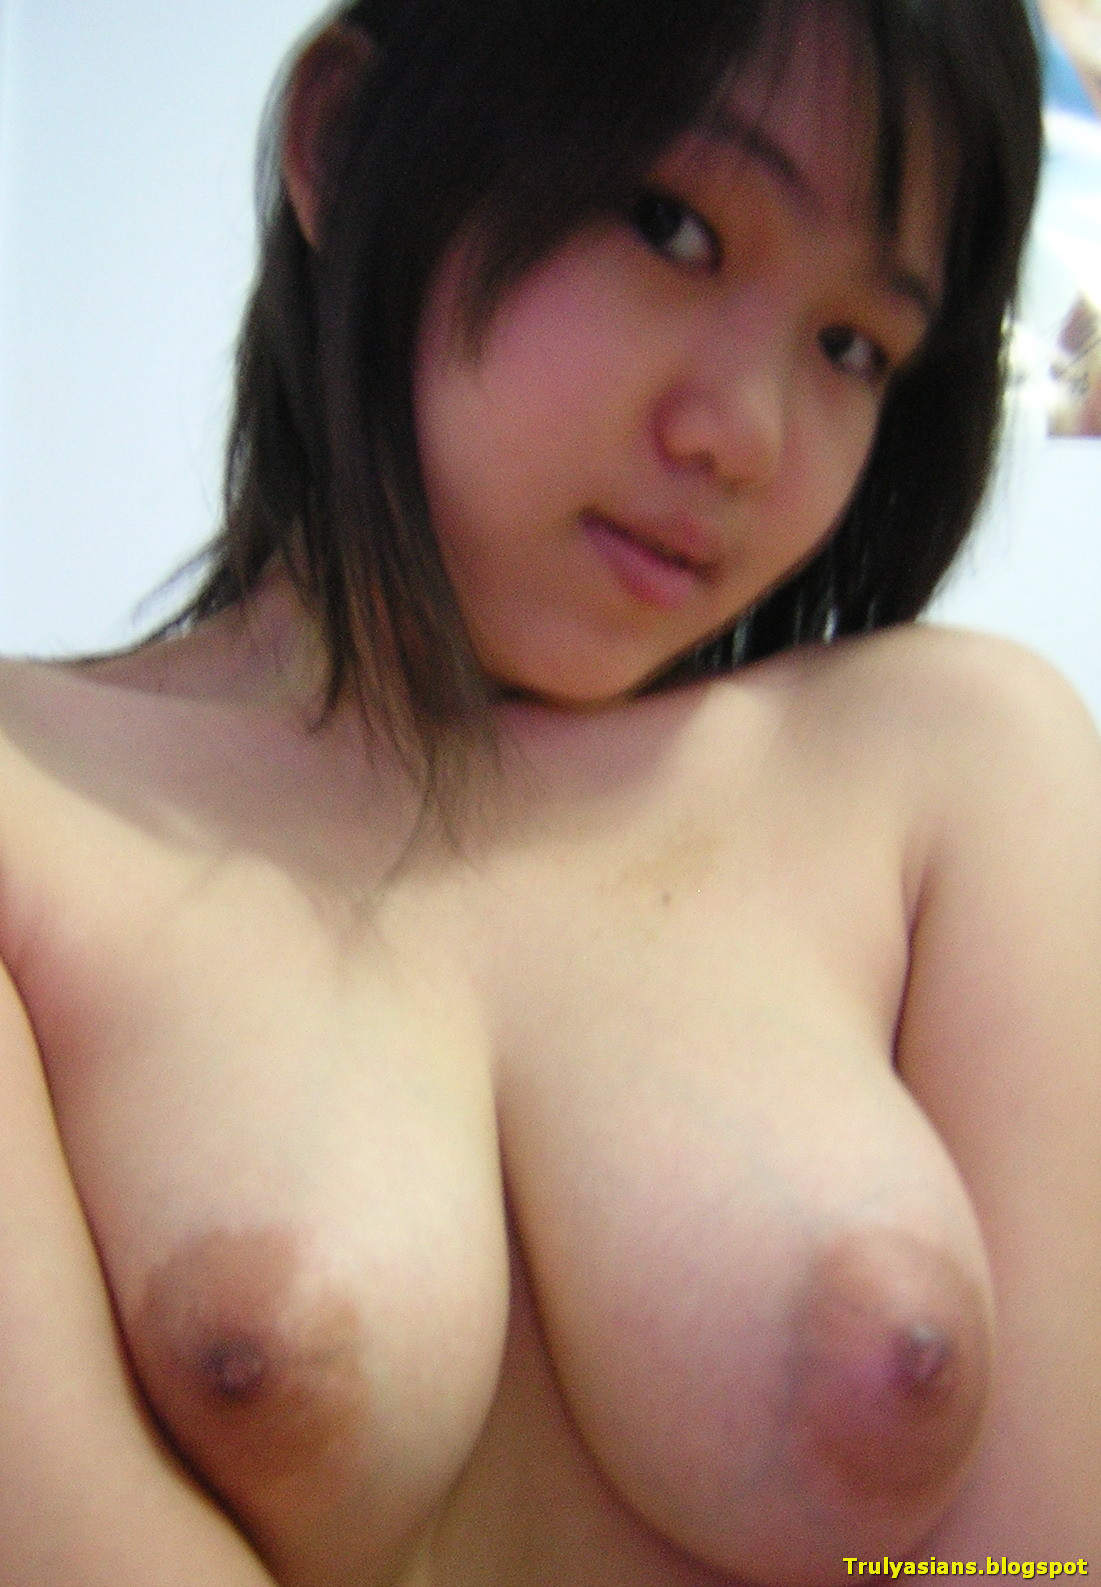 Indefinitely not hot nude indonesian sex for that